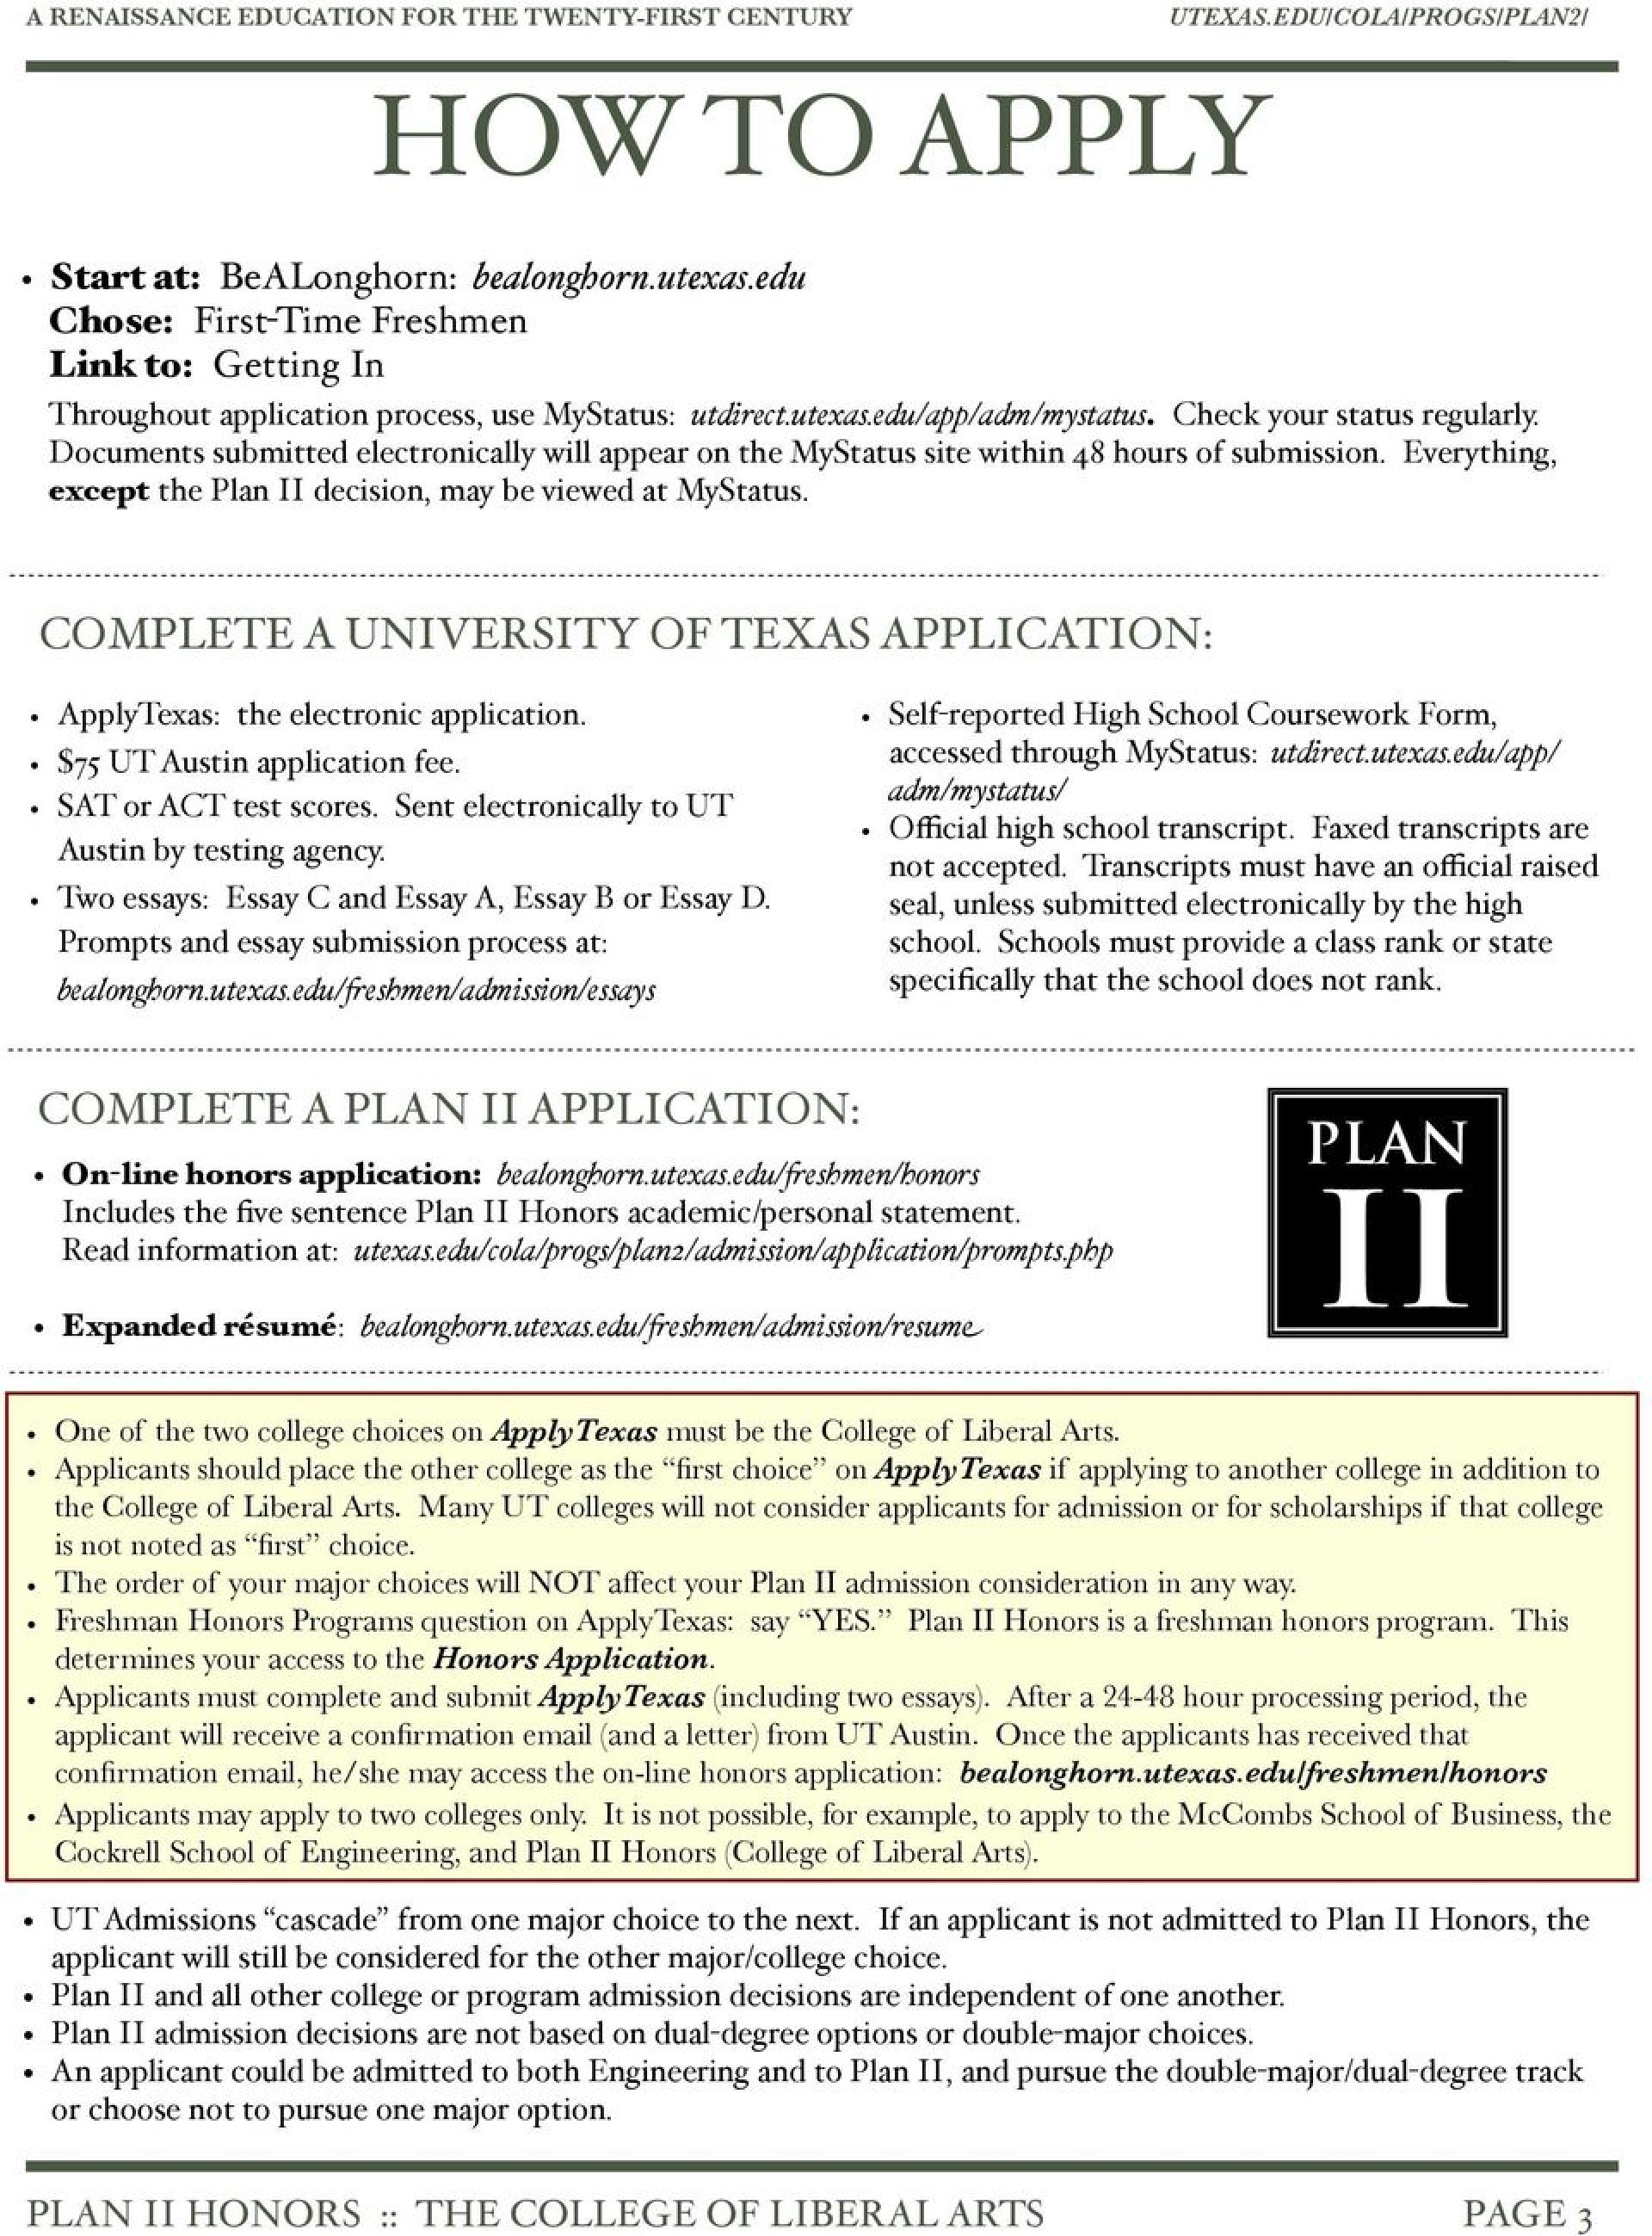 005 Essay Example Fsu Application College Texas Admission P Examples Florida State Remarkable 1920